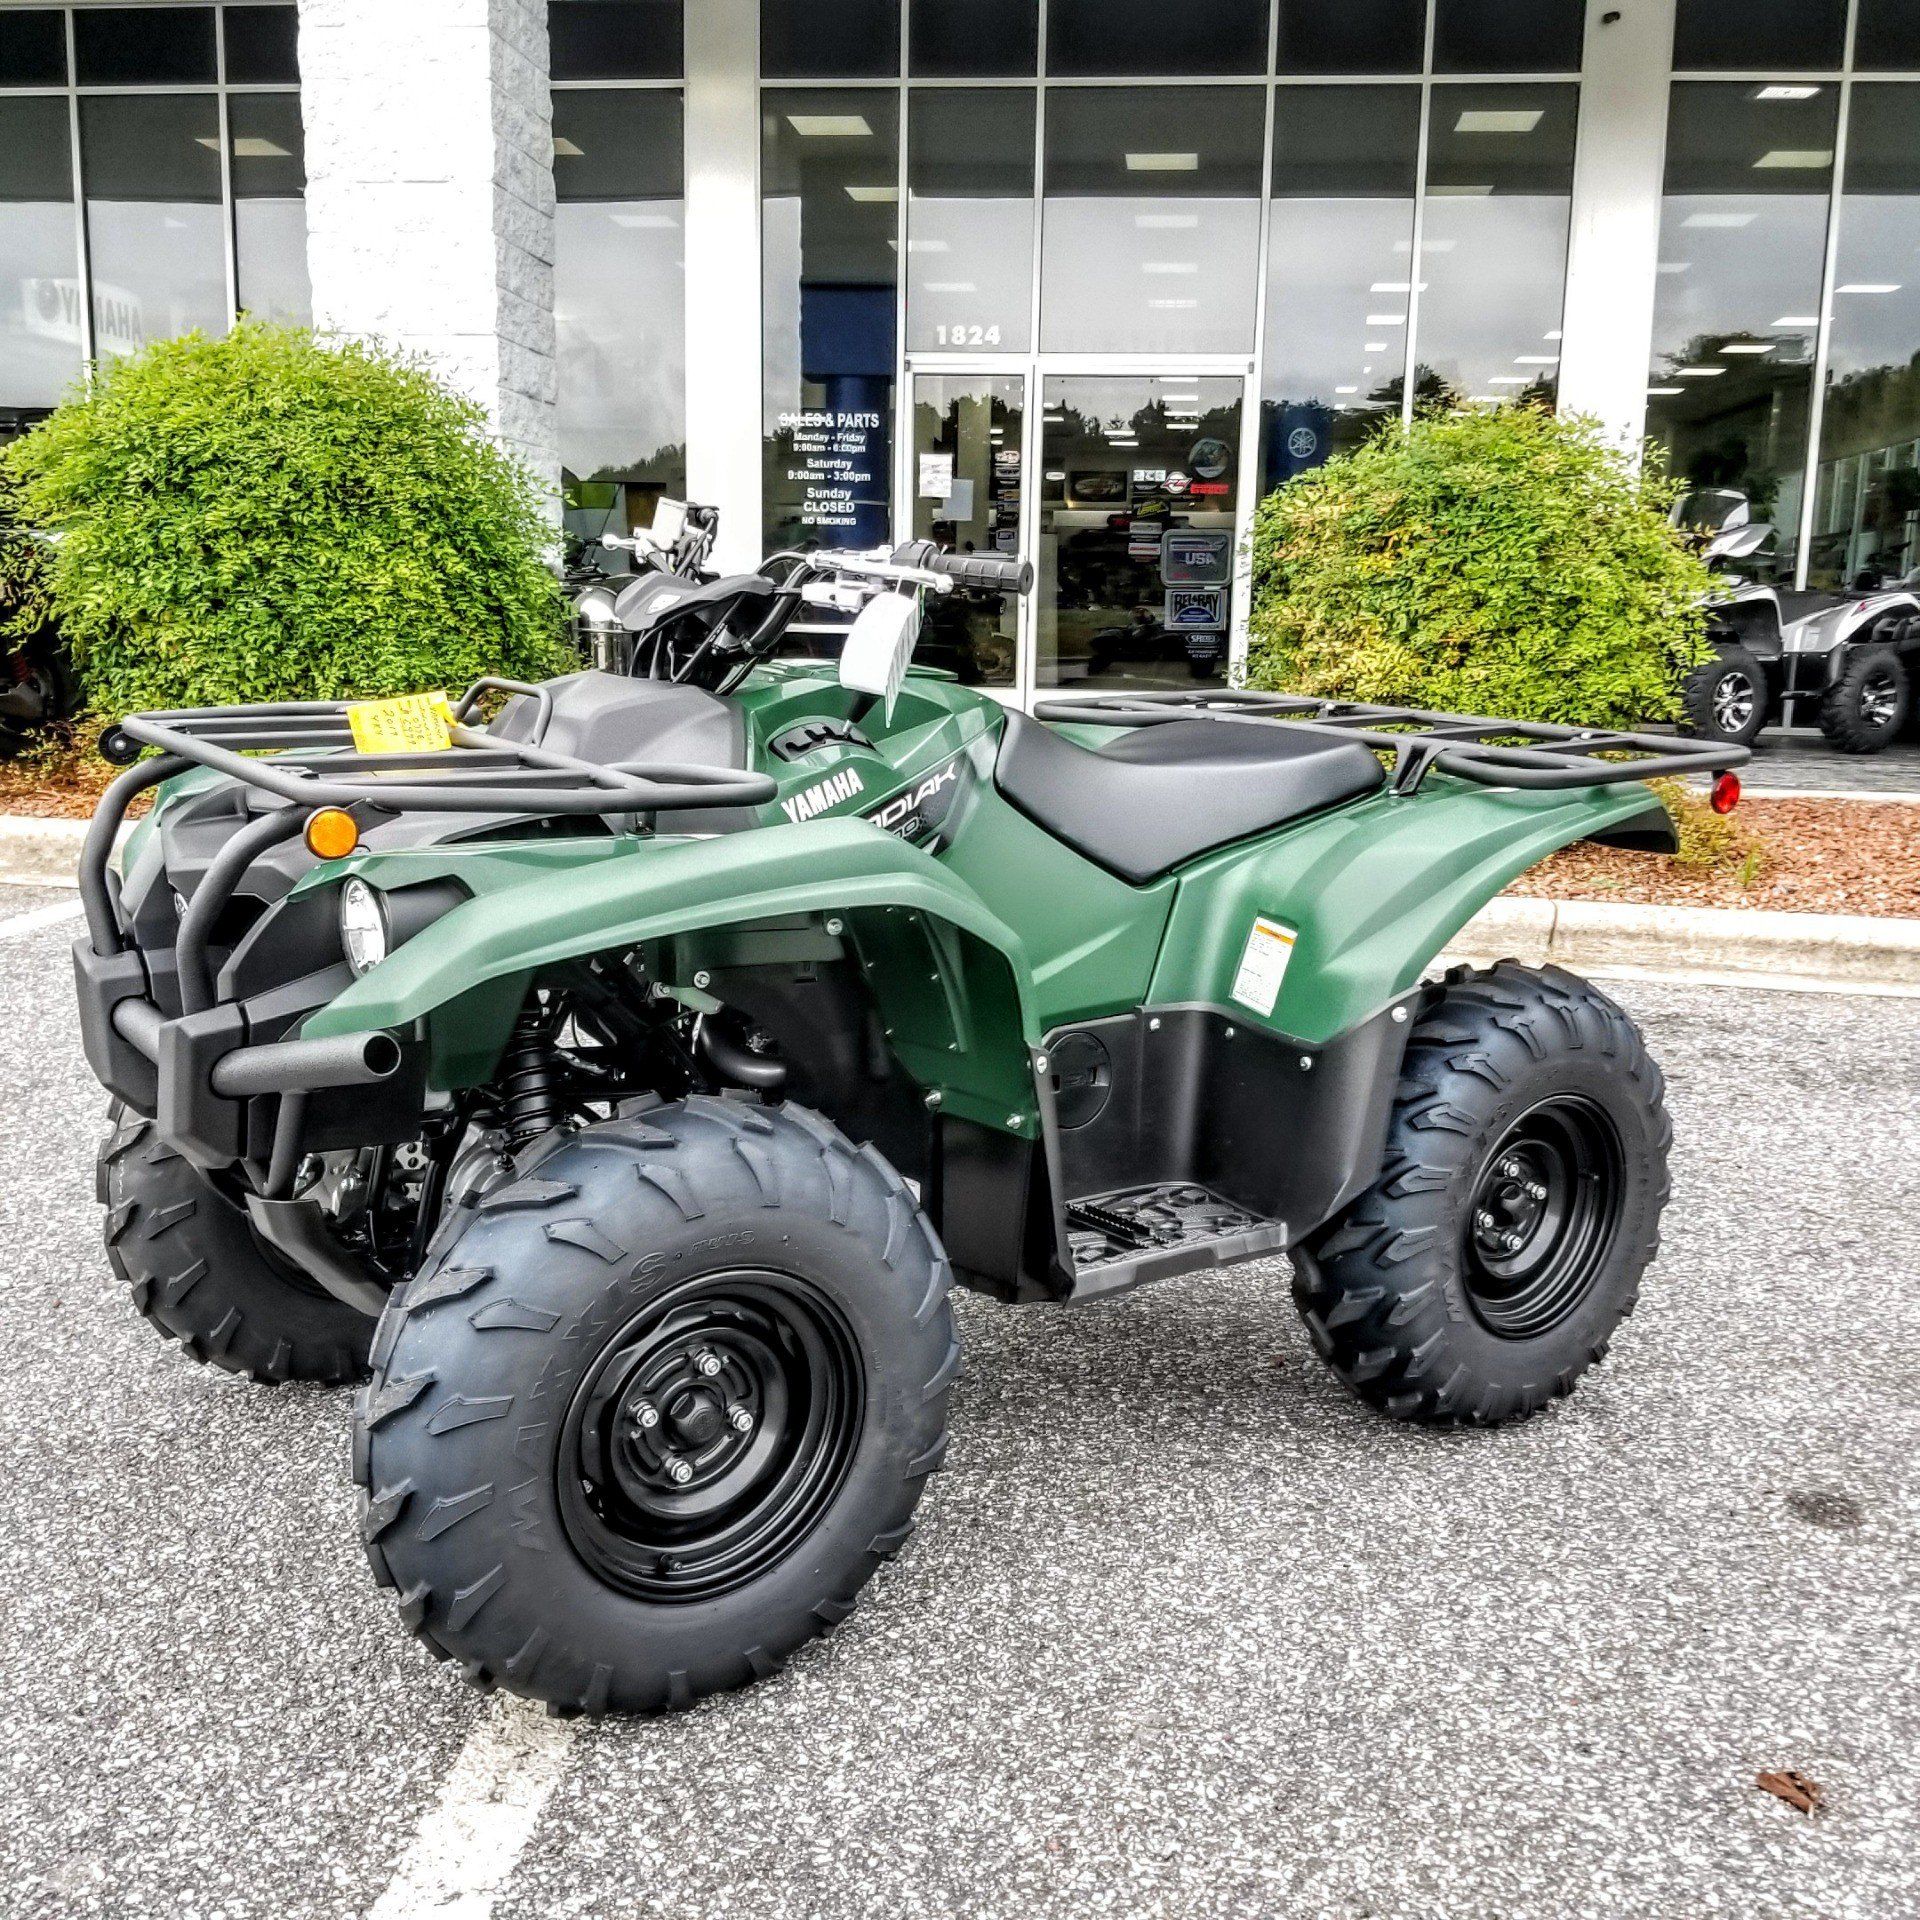 2019 Yamaha Kodiak 700 in Hickory, North Carolina - Photo 2